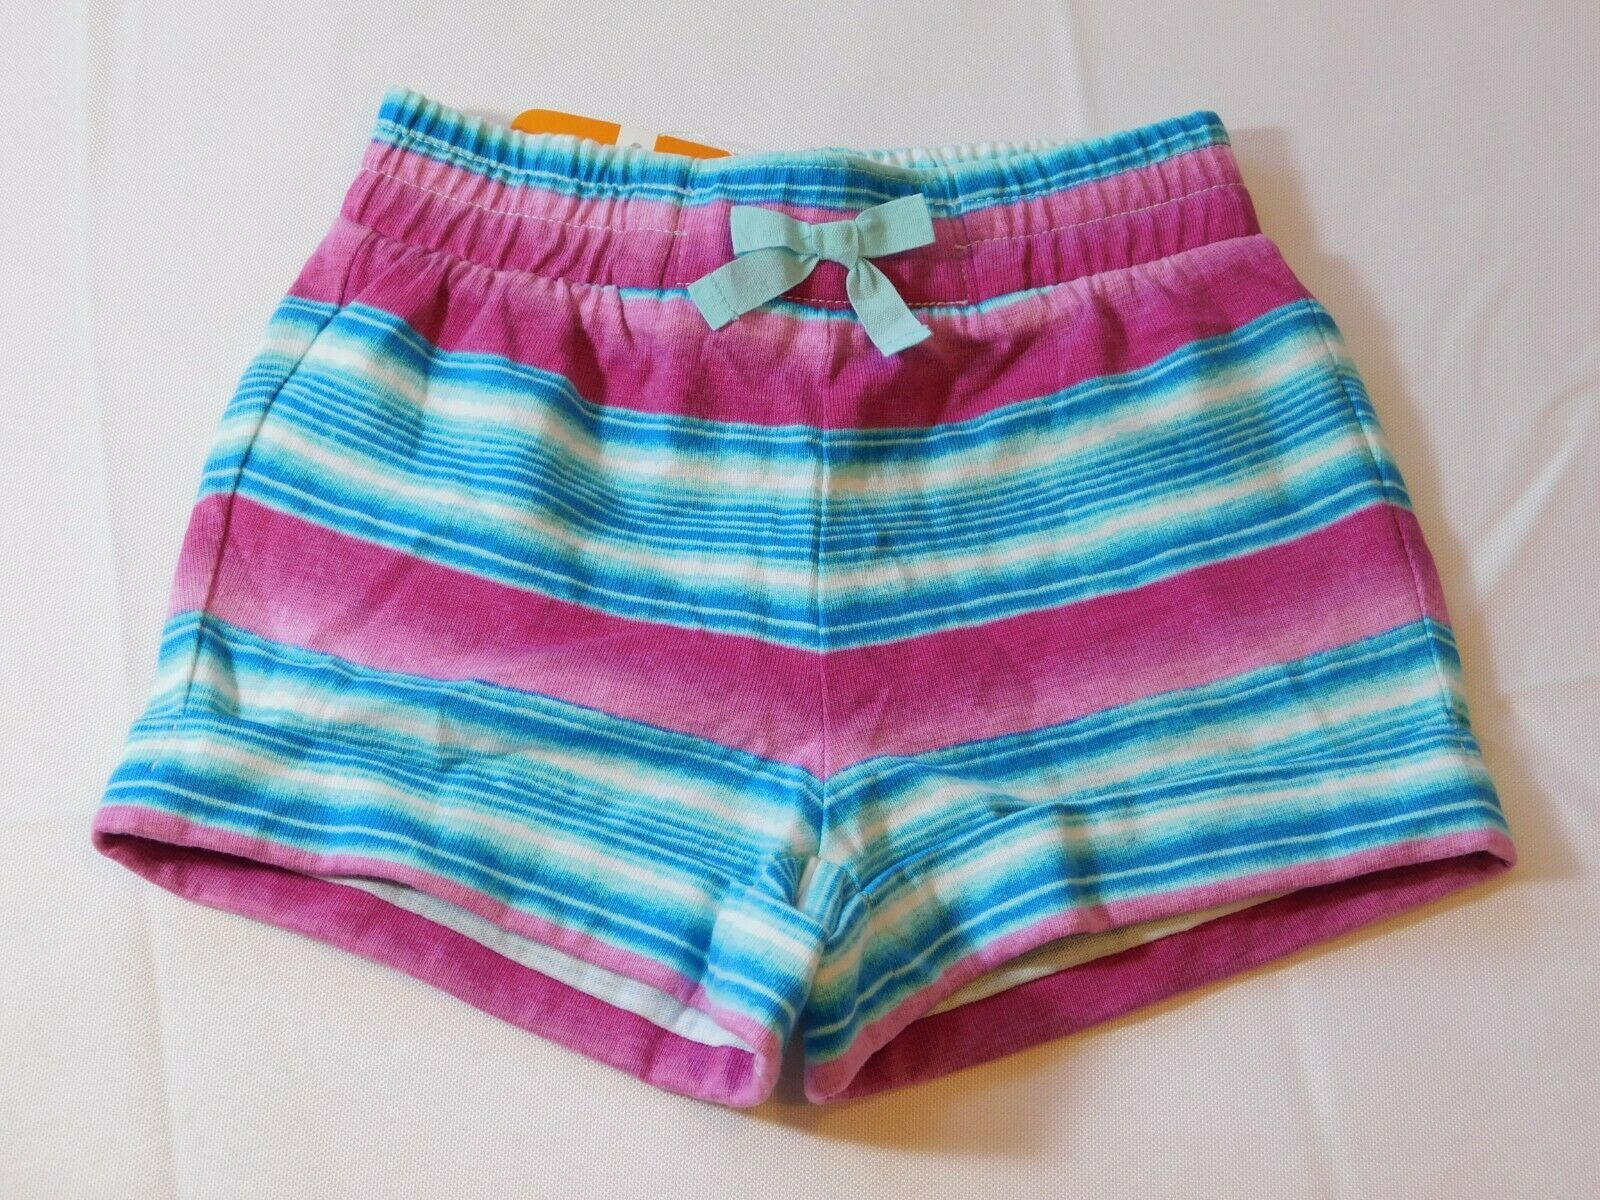 Primary image for Gymboree Baby Girl's Short Shorts 6-12 Months 17GYSM4 Striped Pink Aqua NWT